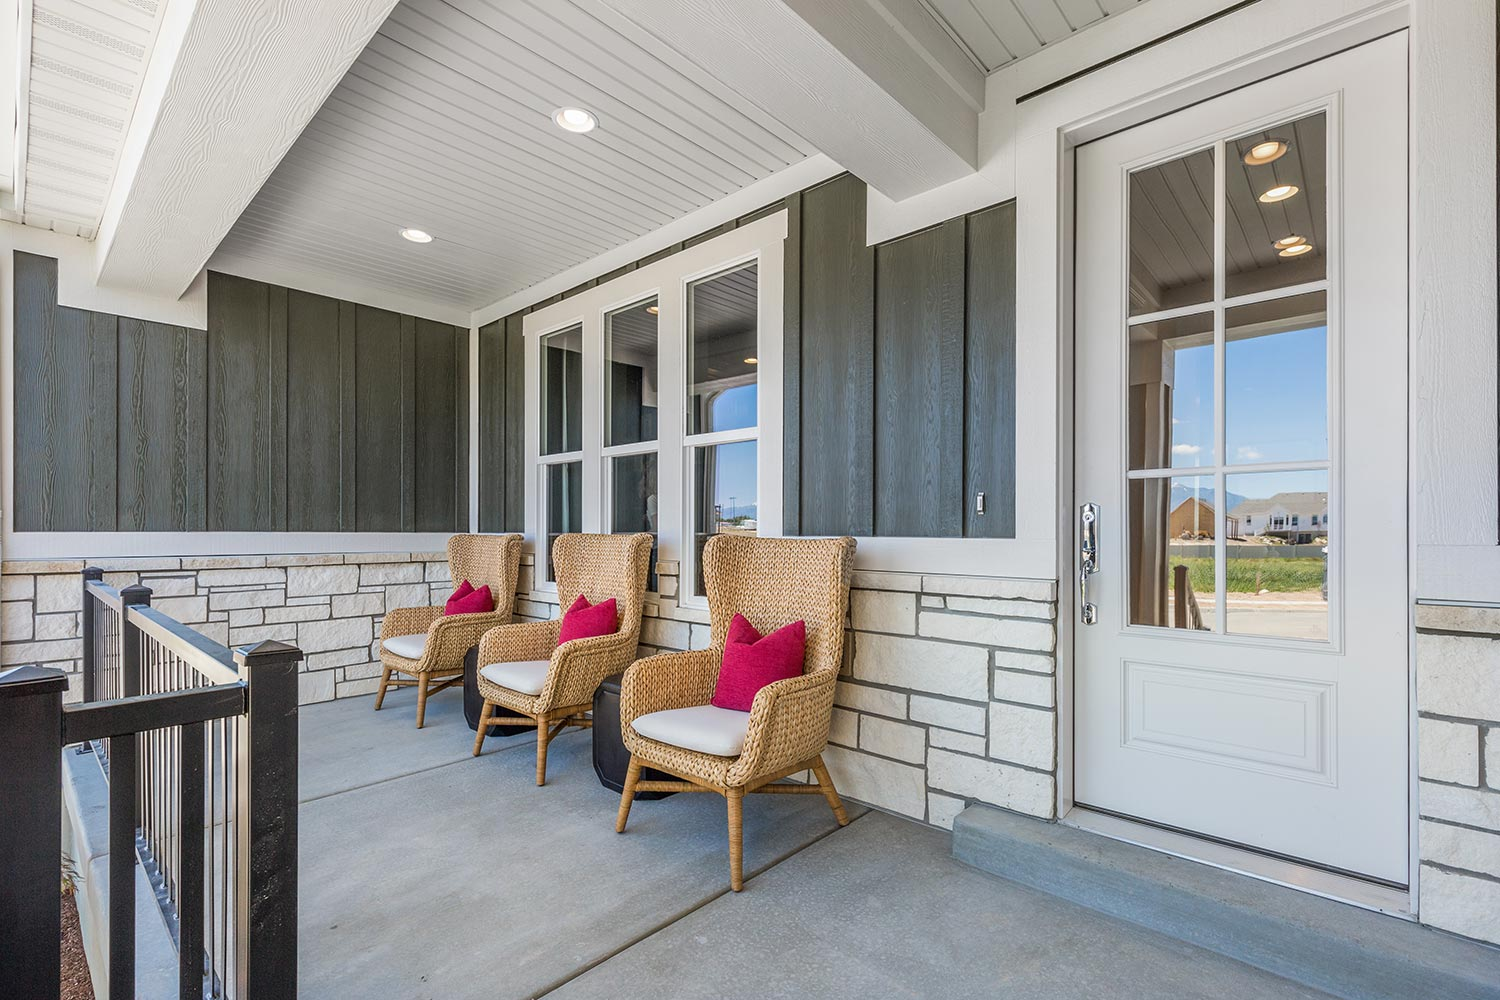 Front porch of a house with rattan chairs and concrete floor